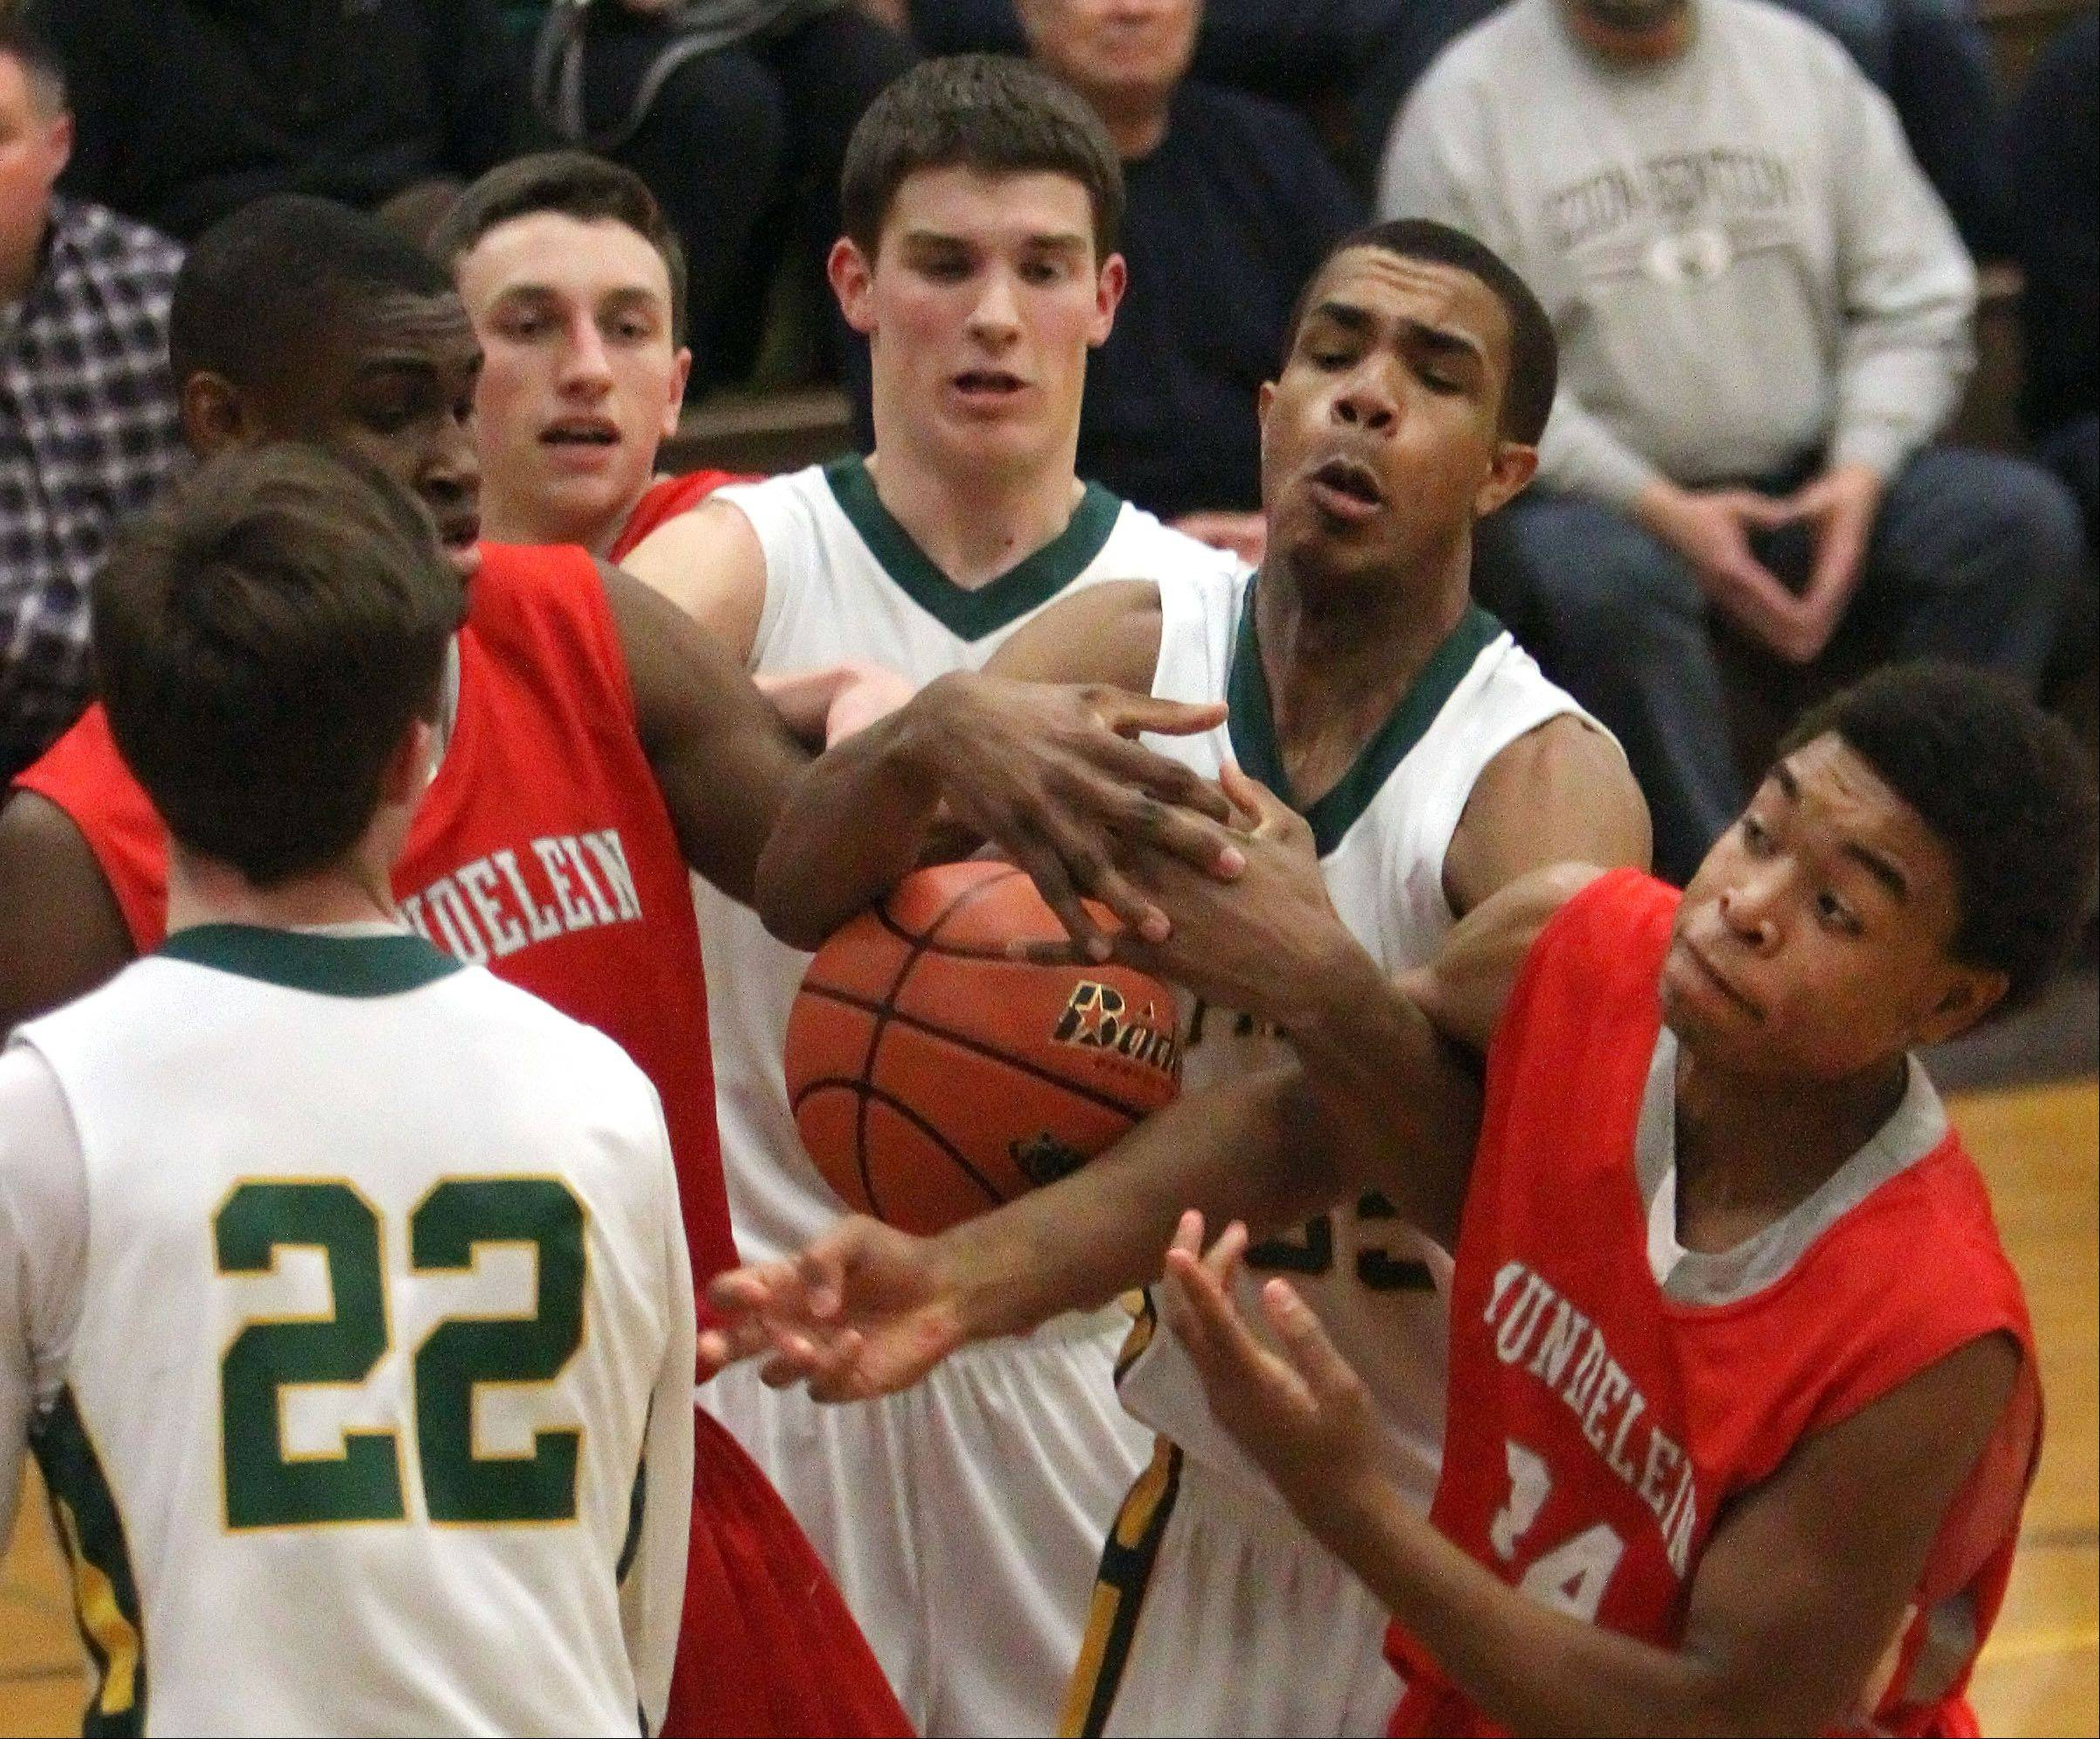 Players from Steveson and Mundelein scramble for a loose ball.